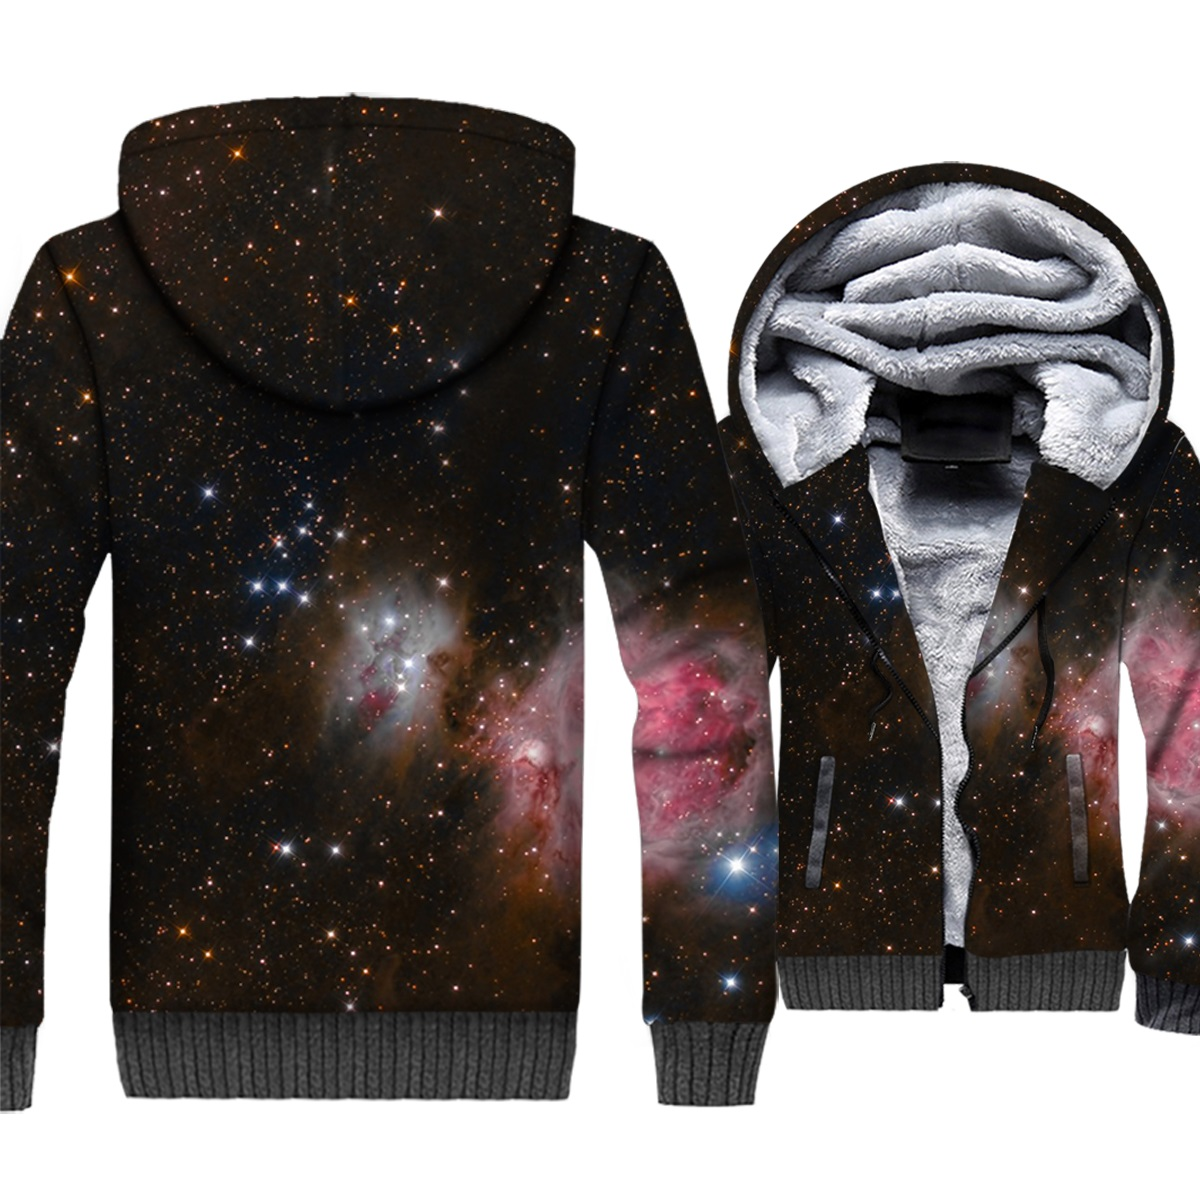 Space Galaxy 3D Hoodies Men Colorful Nebula Sweatshirts Harajuku Coat 2018 Brand Winter Thick Fleece Warm Paisley Nebula Jackets